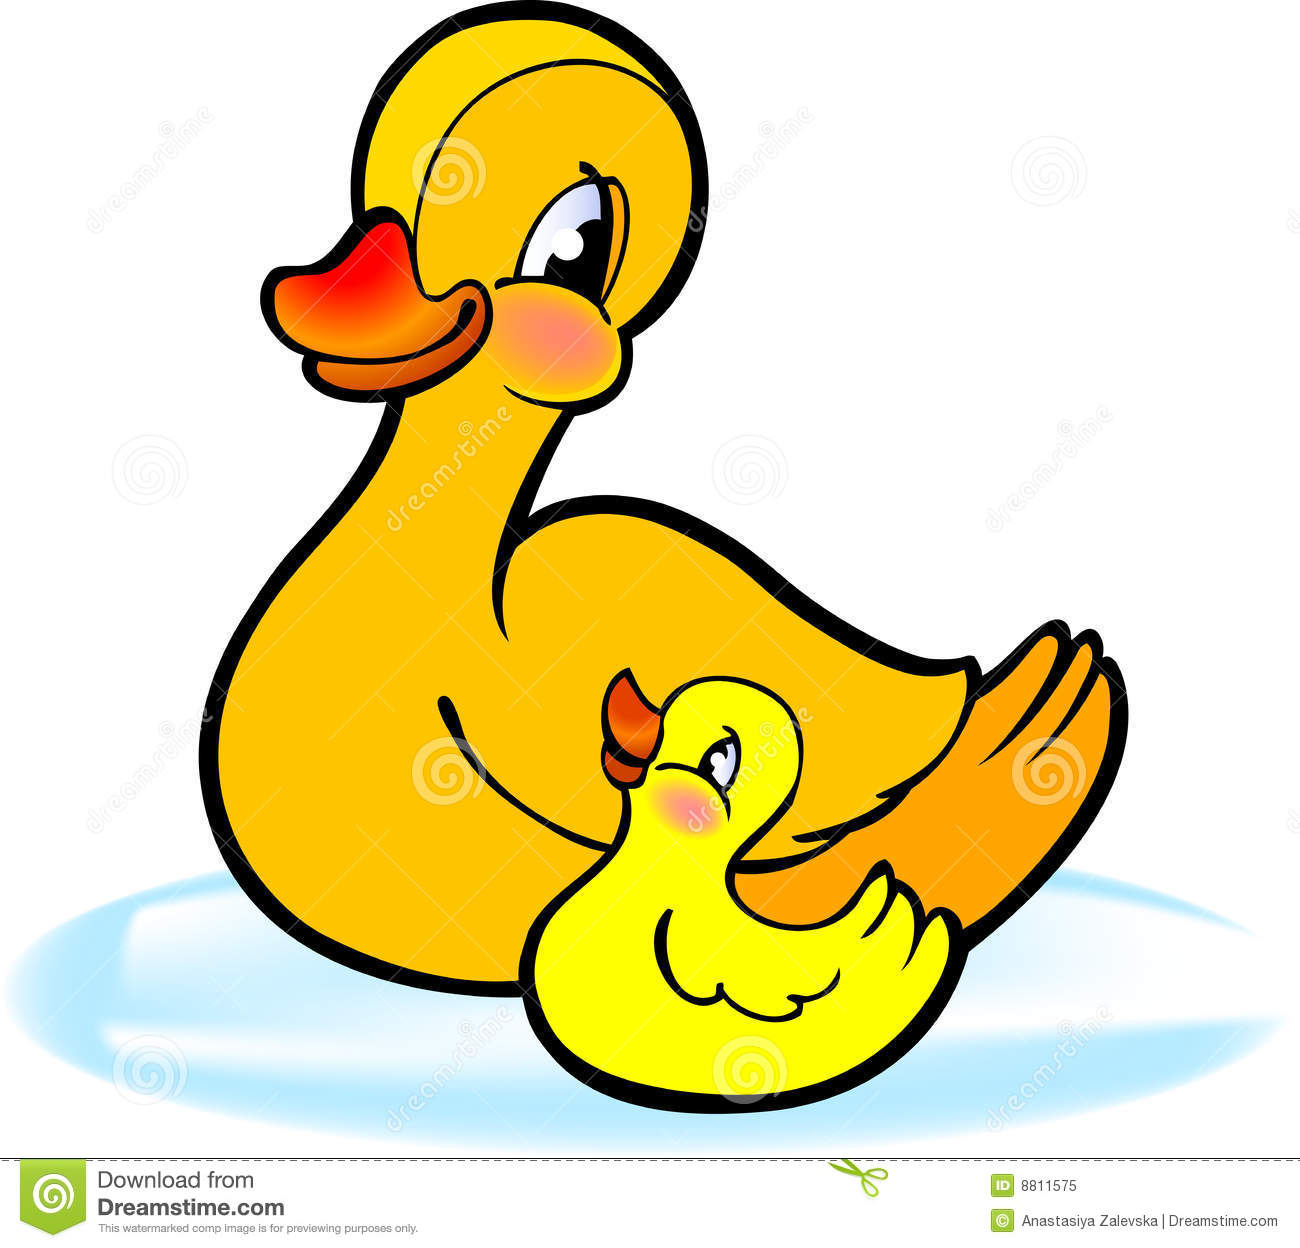 Duckling clipart #12, Download drawings